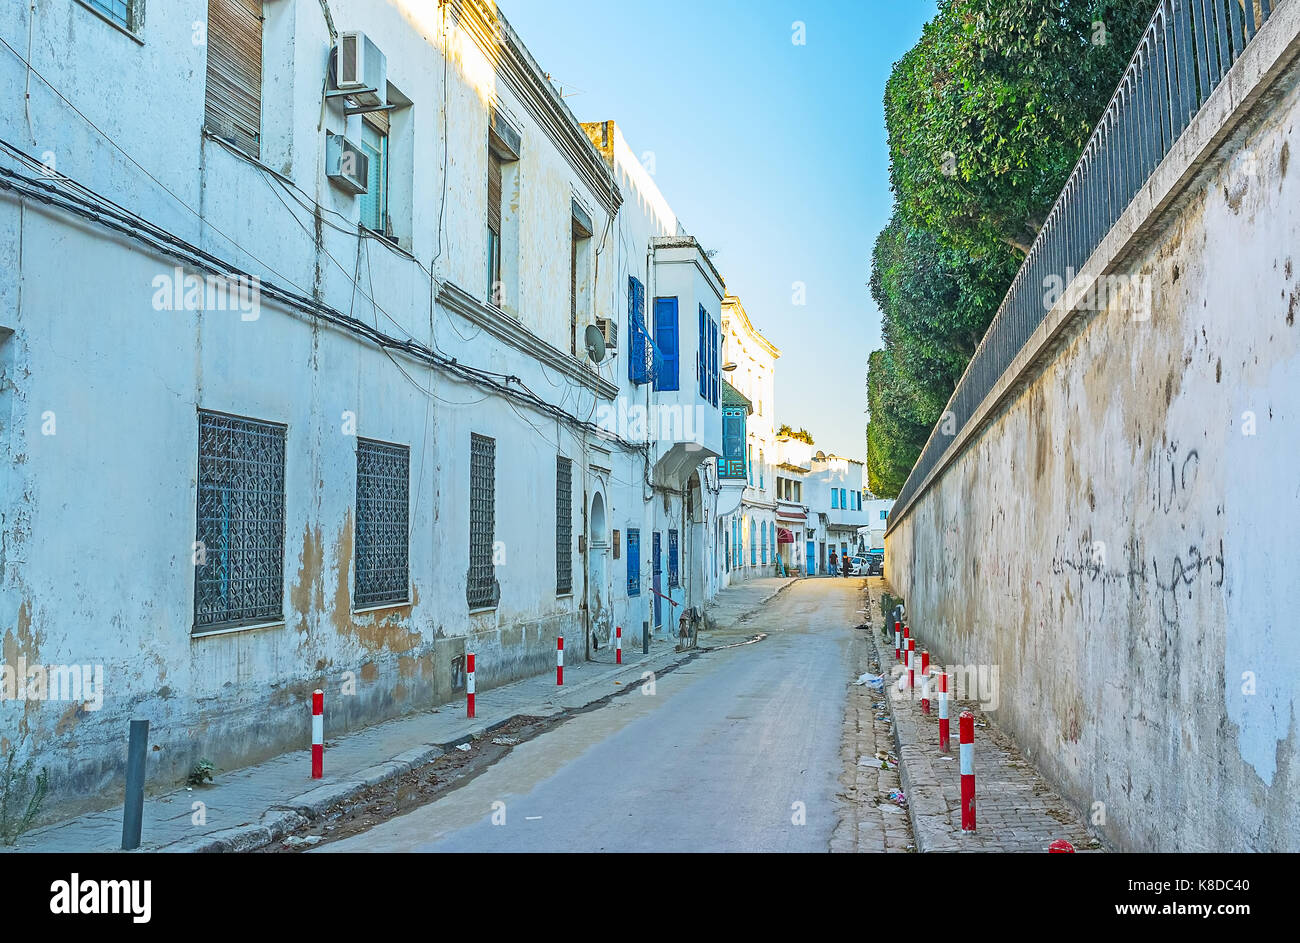 The Bab Menara boulevard is the border, separating medina and a newer neighborhoods of the city, Tunis, Tunisia. - Stock Image